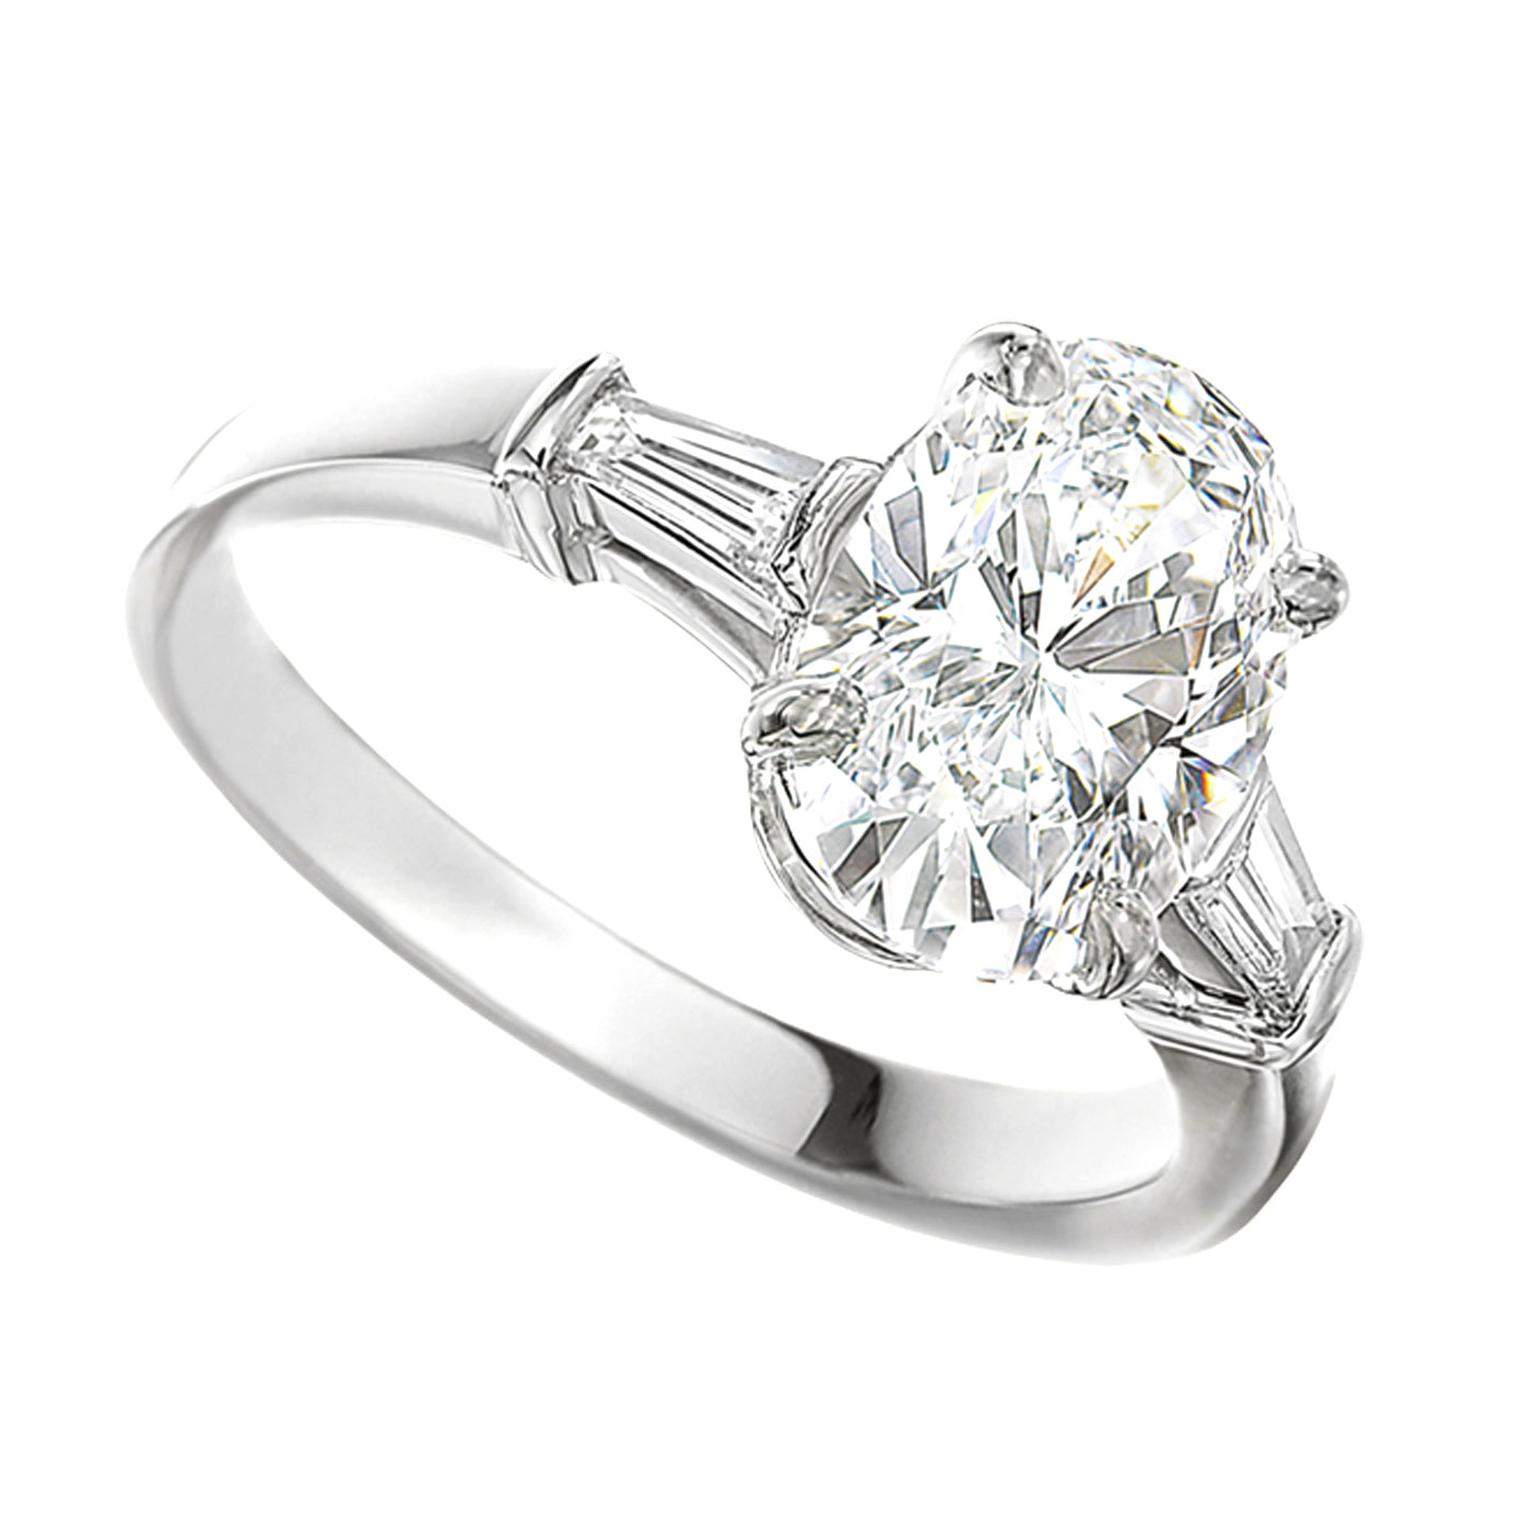 Bulgari oval-cut diamond engagement ring